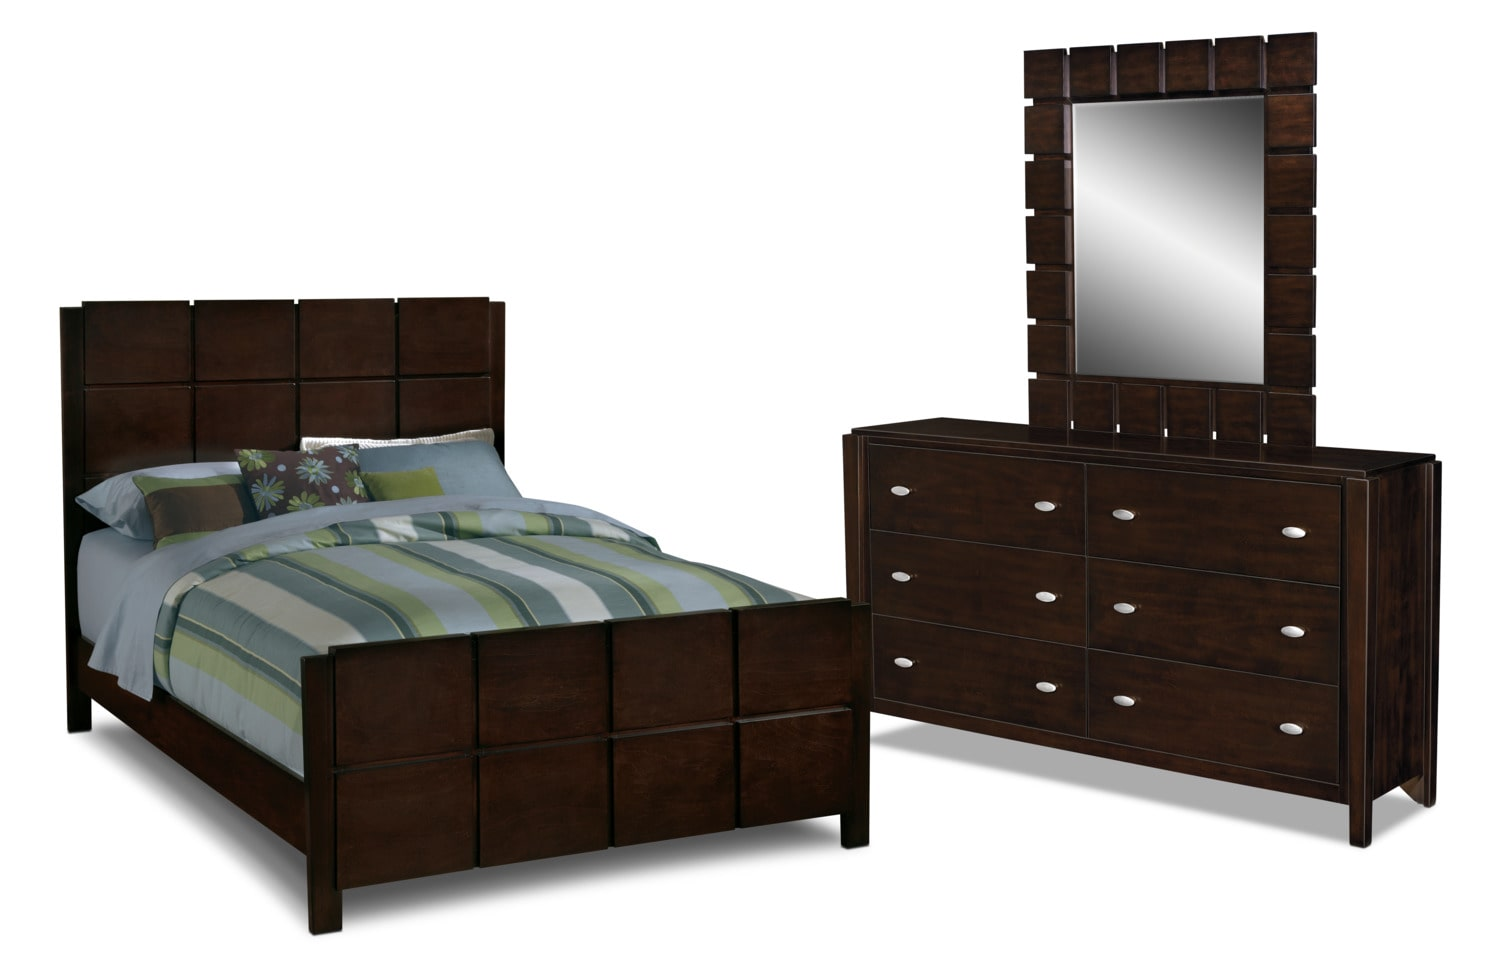 Mosaic 5-Piece King Bedroom Set - Dark Brown